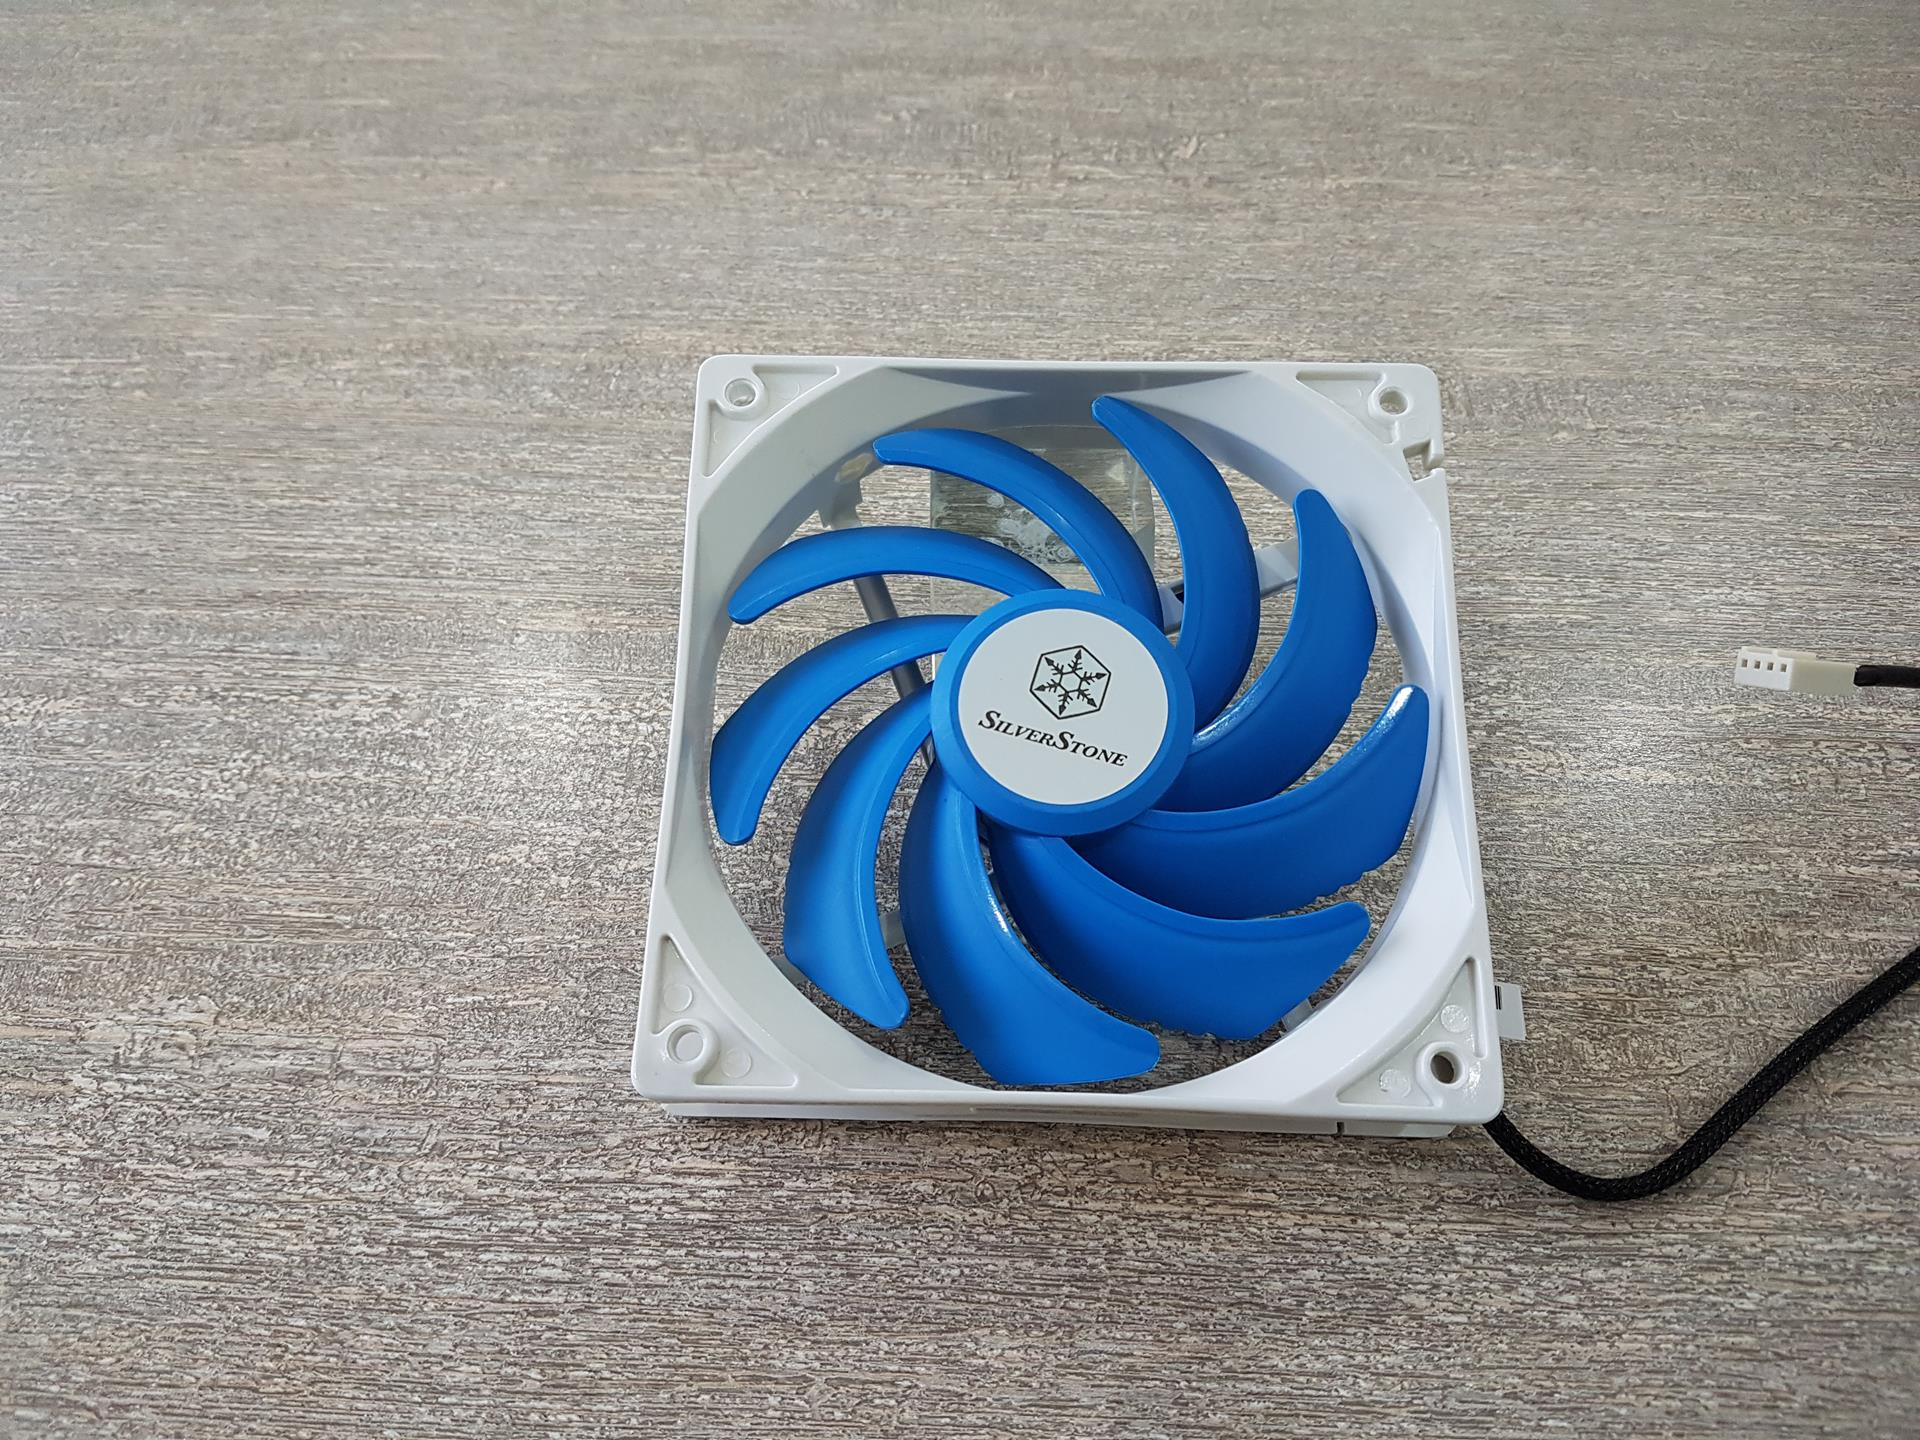 SilverStone SST-FQ121 Ultra-Quiet PWM 120mm Fans Review